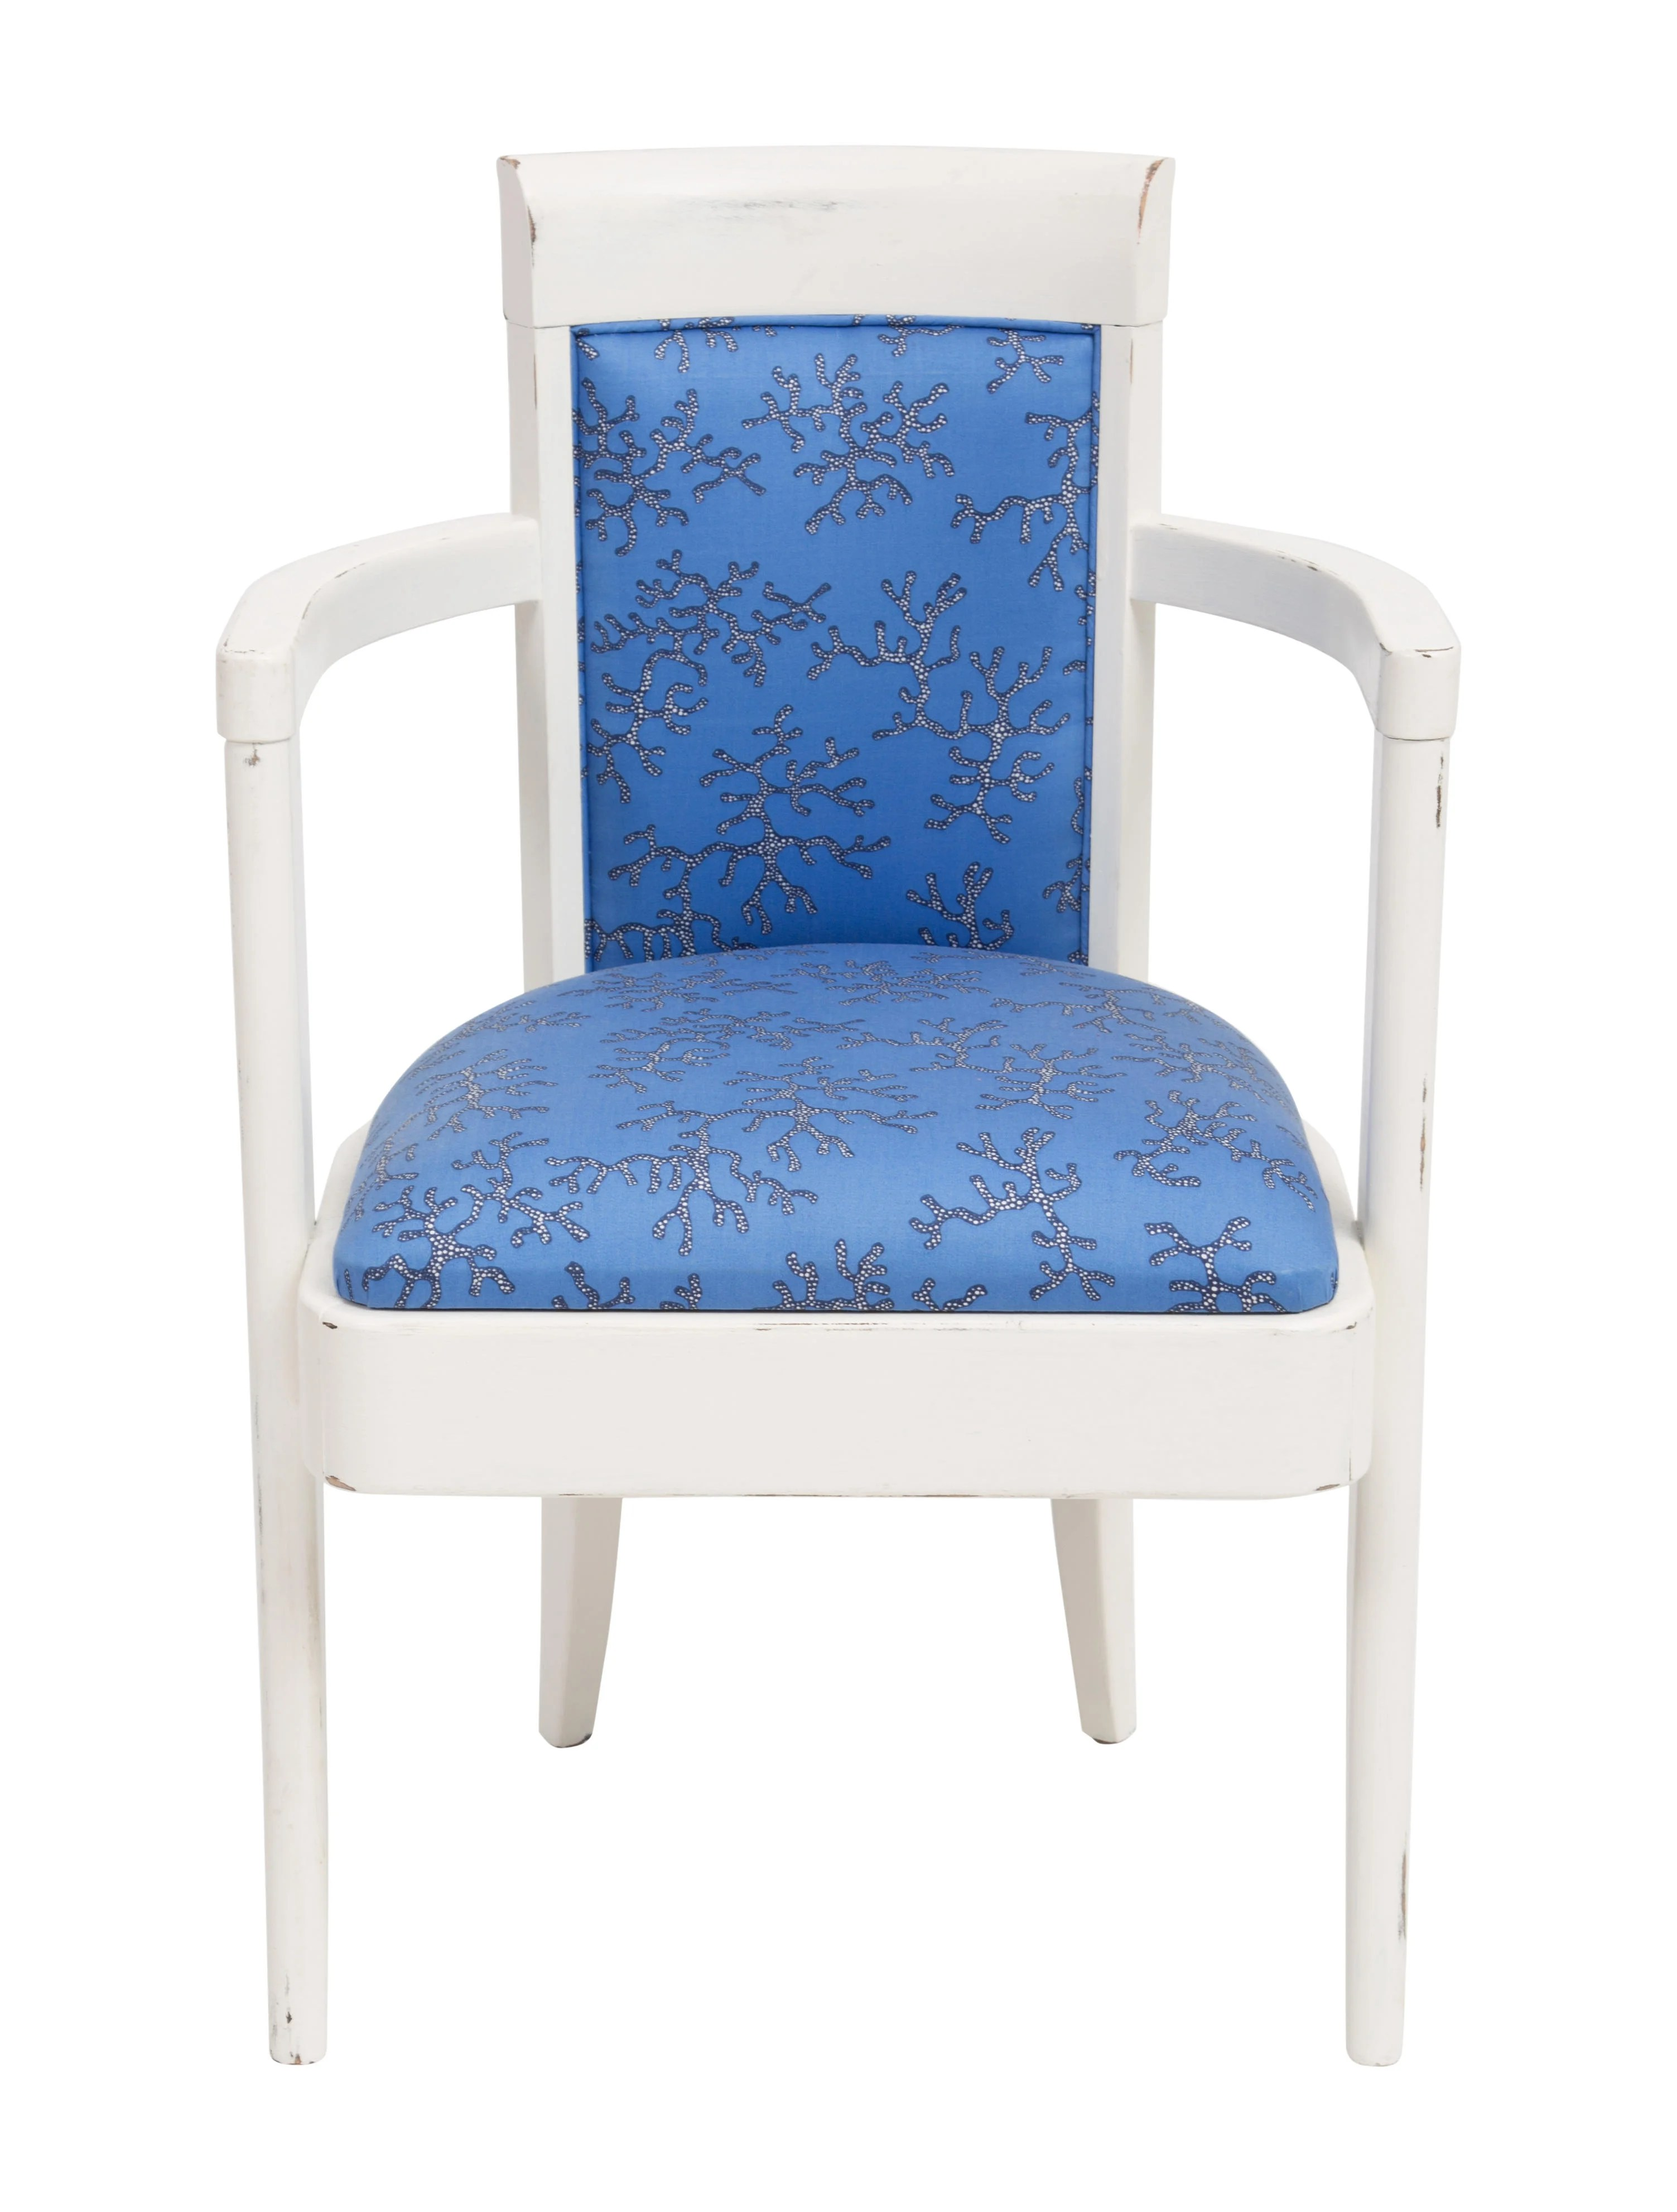 lilly pulitzer chair american rocking styles kravet armchair furniture wll20039